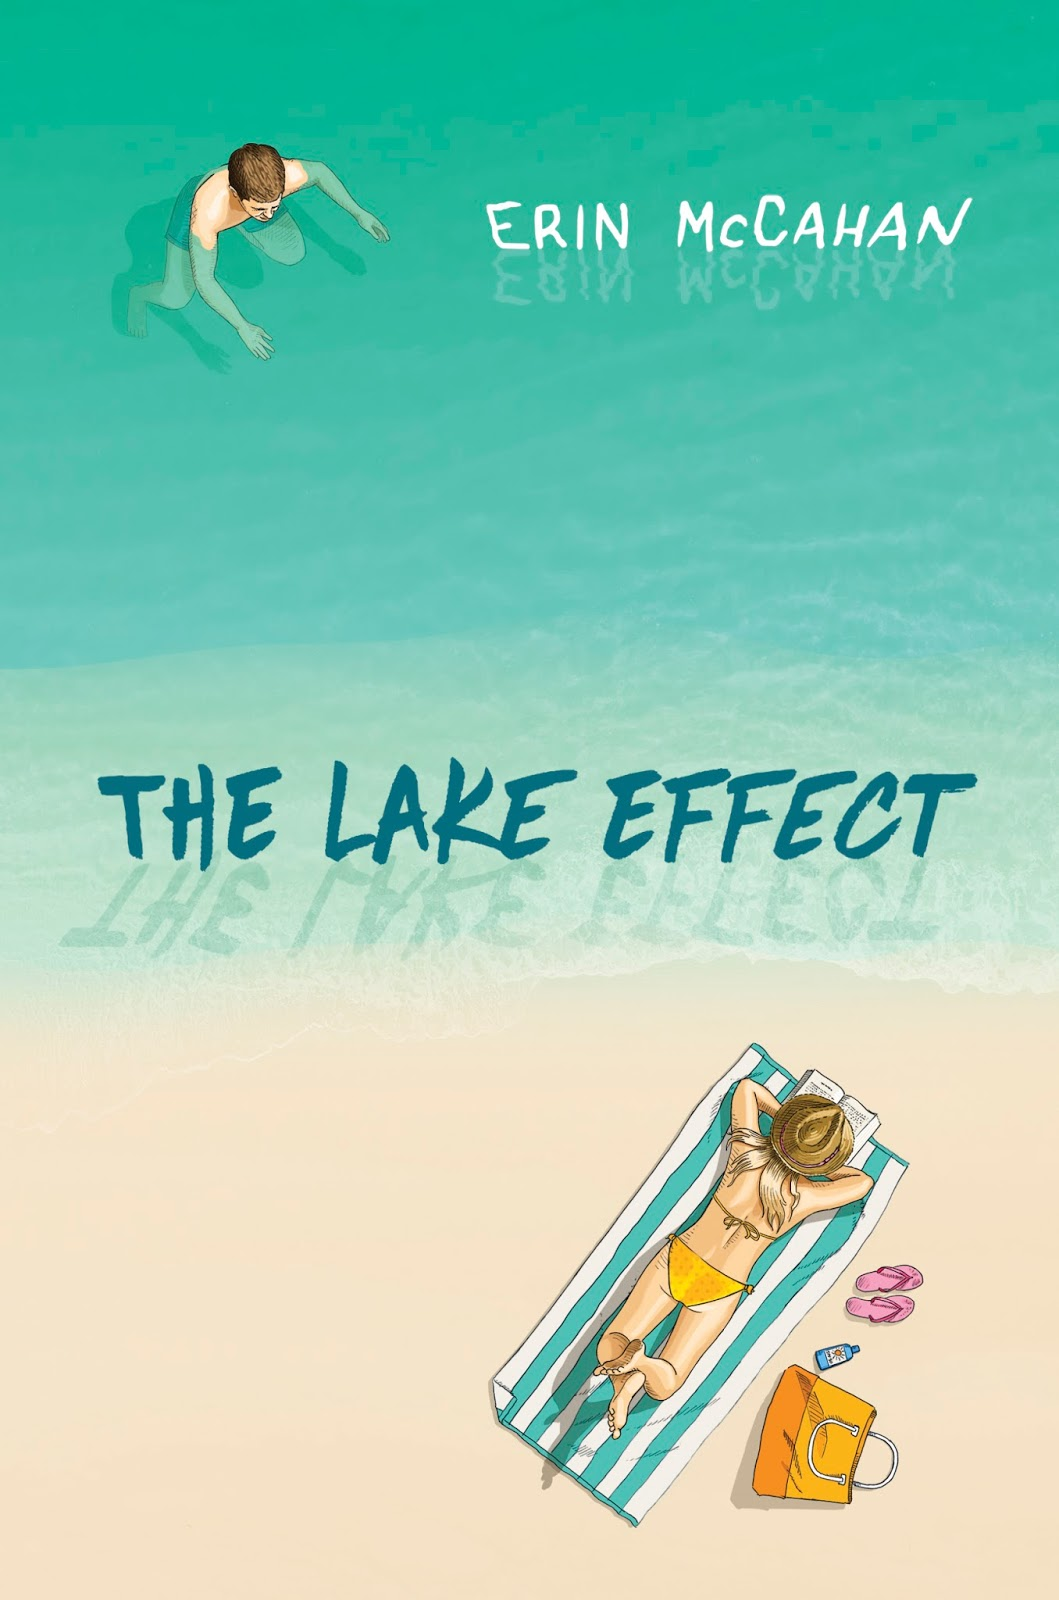 The Lake Effect book cover